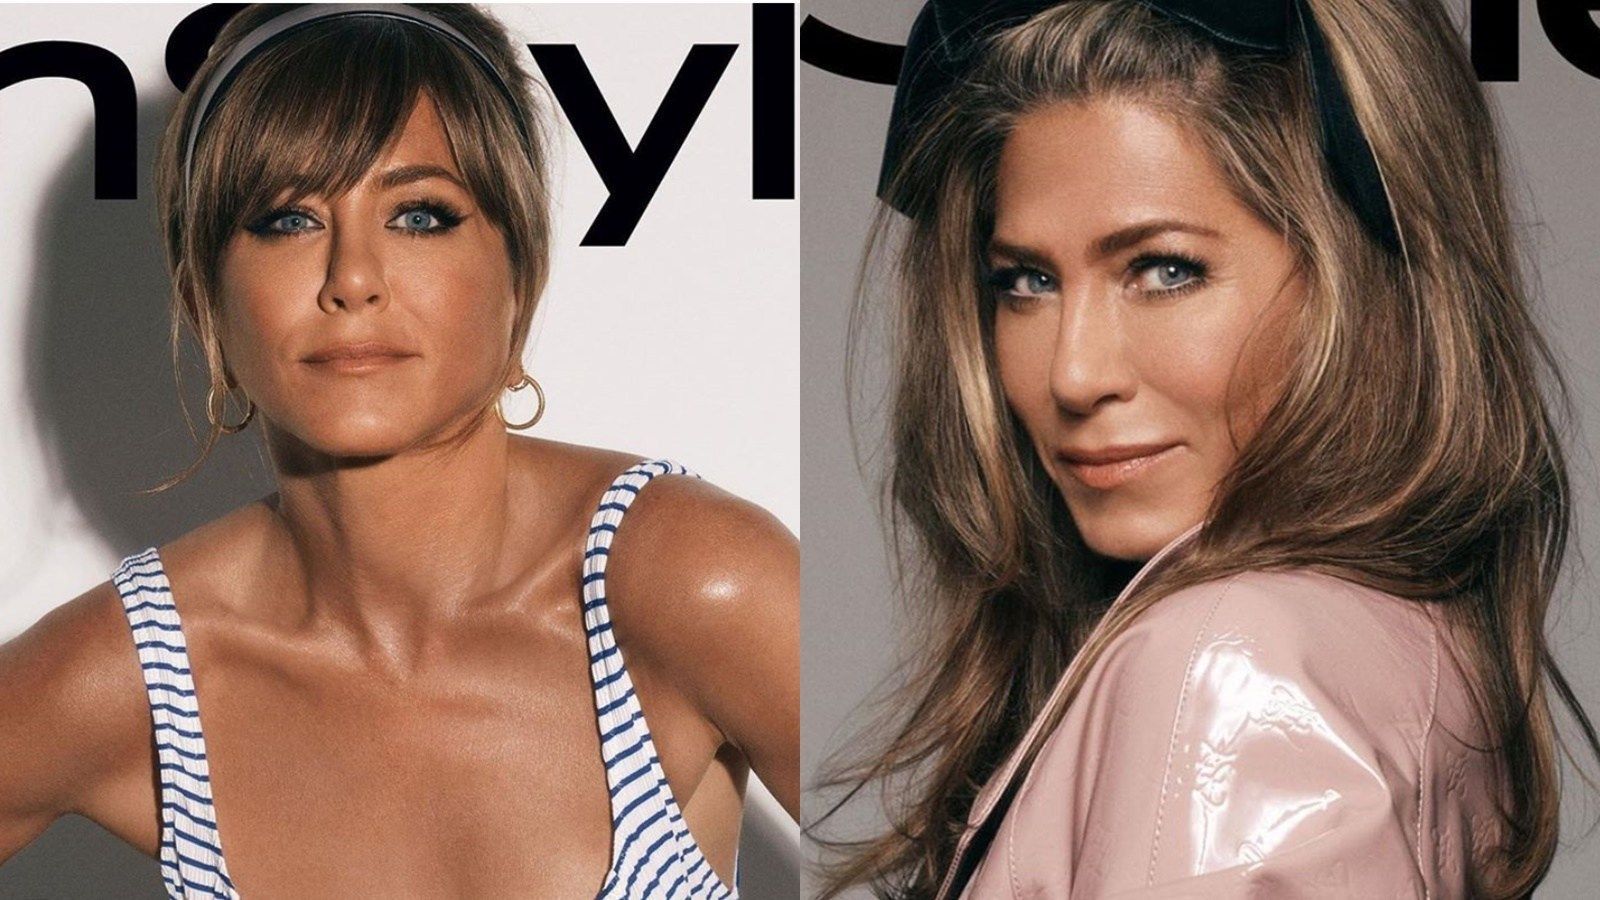 Jennifer Aniston S Dark Skin Color On Instyle October Beauty Cover Upsets Fans Jennifer Aniston Skin Color Dark Skin